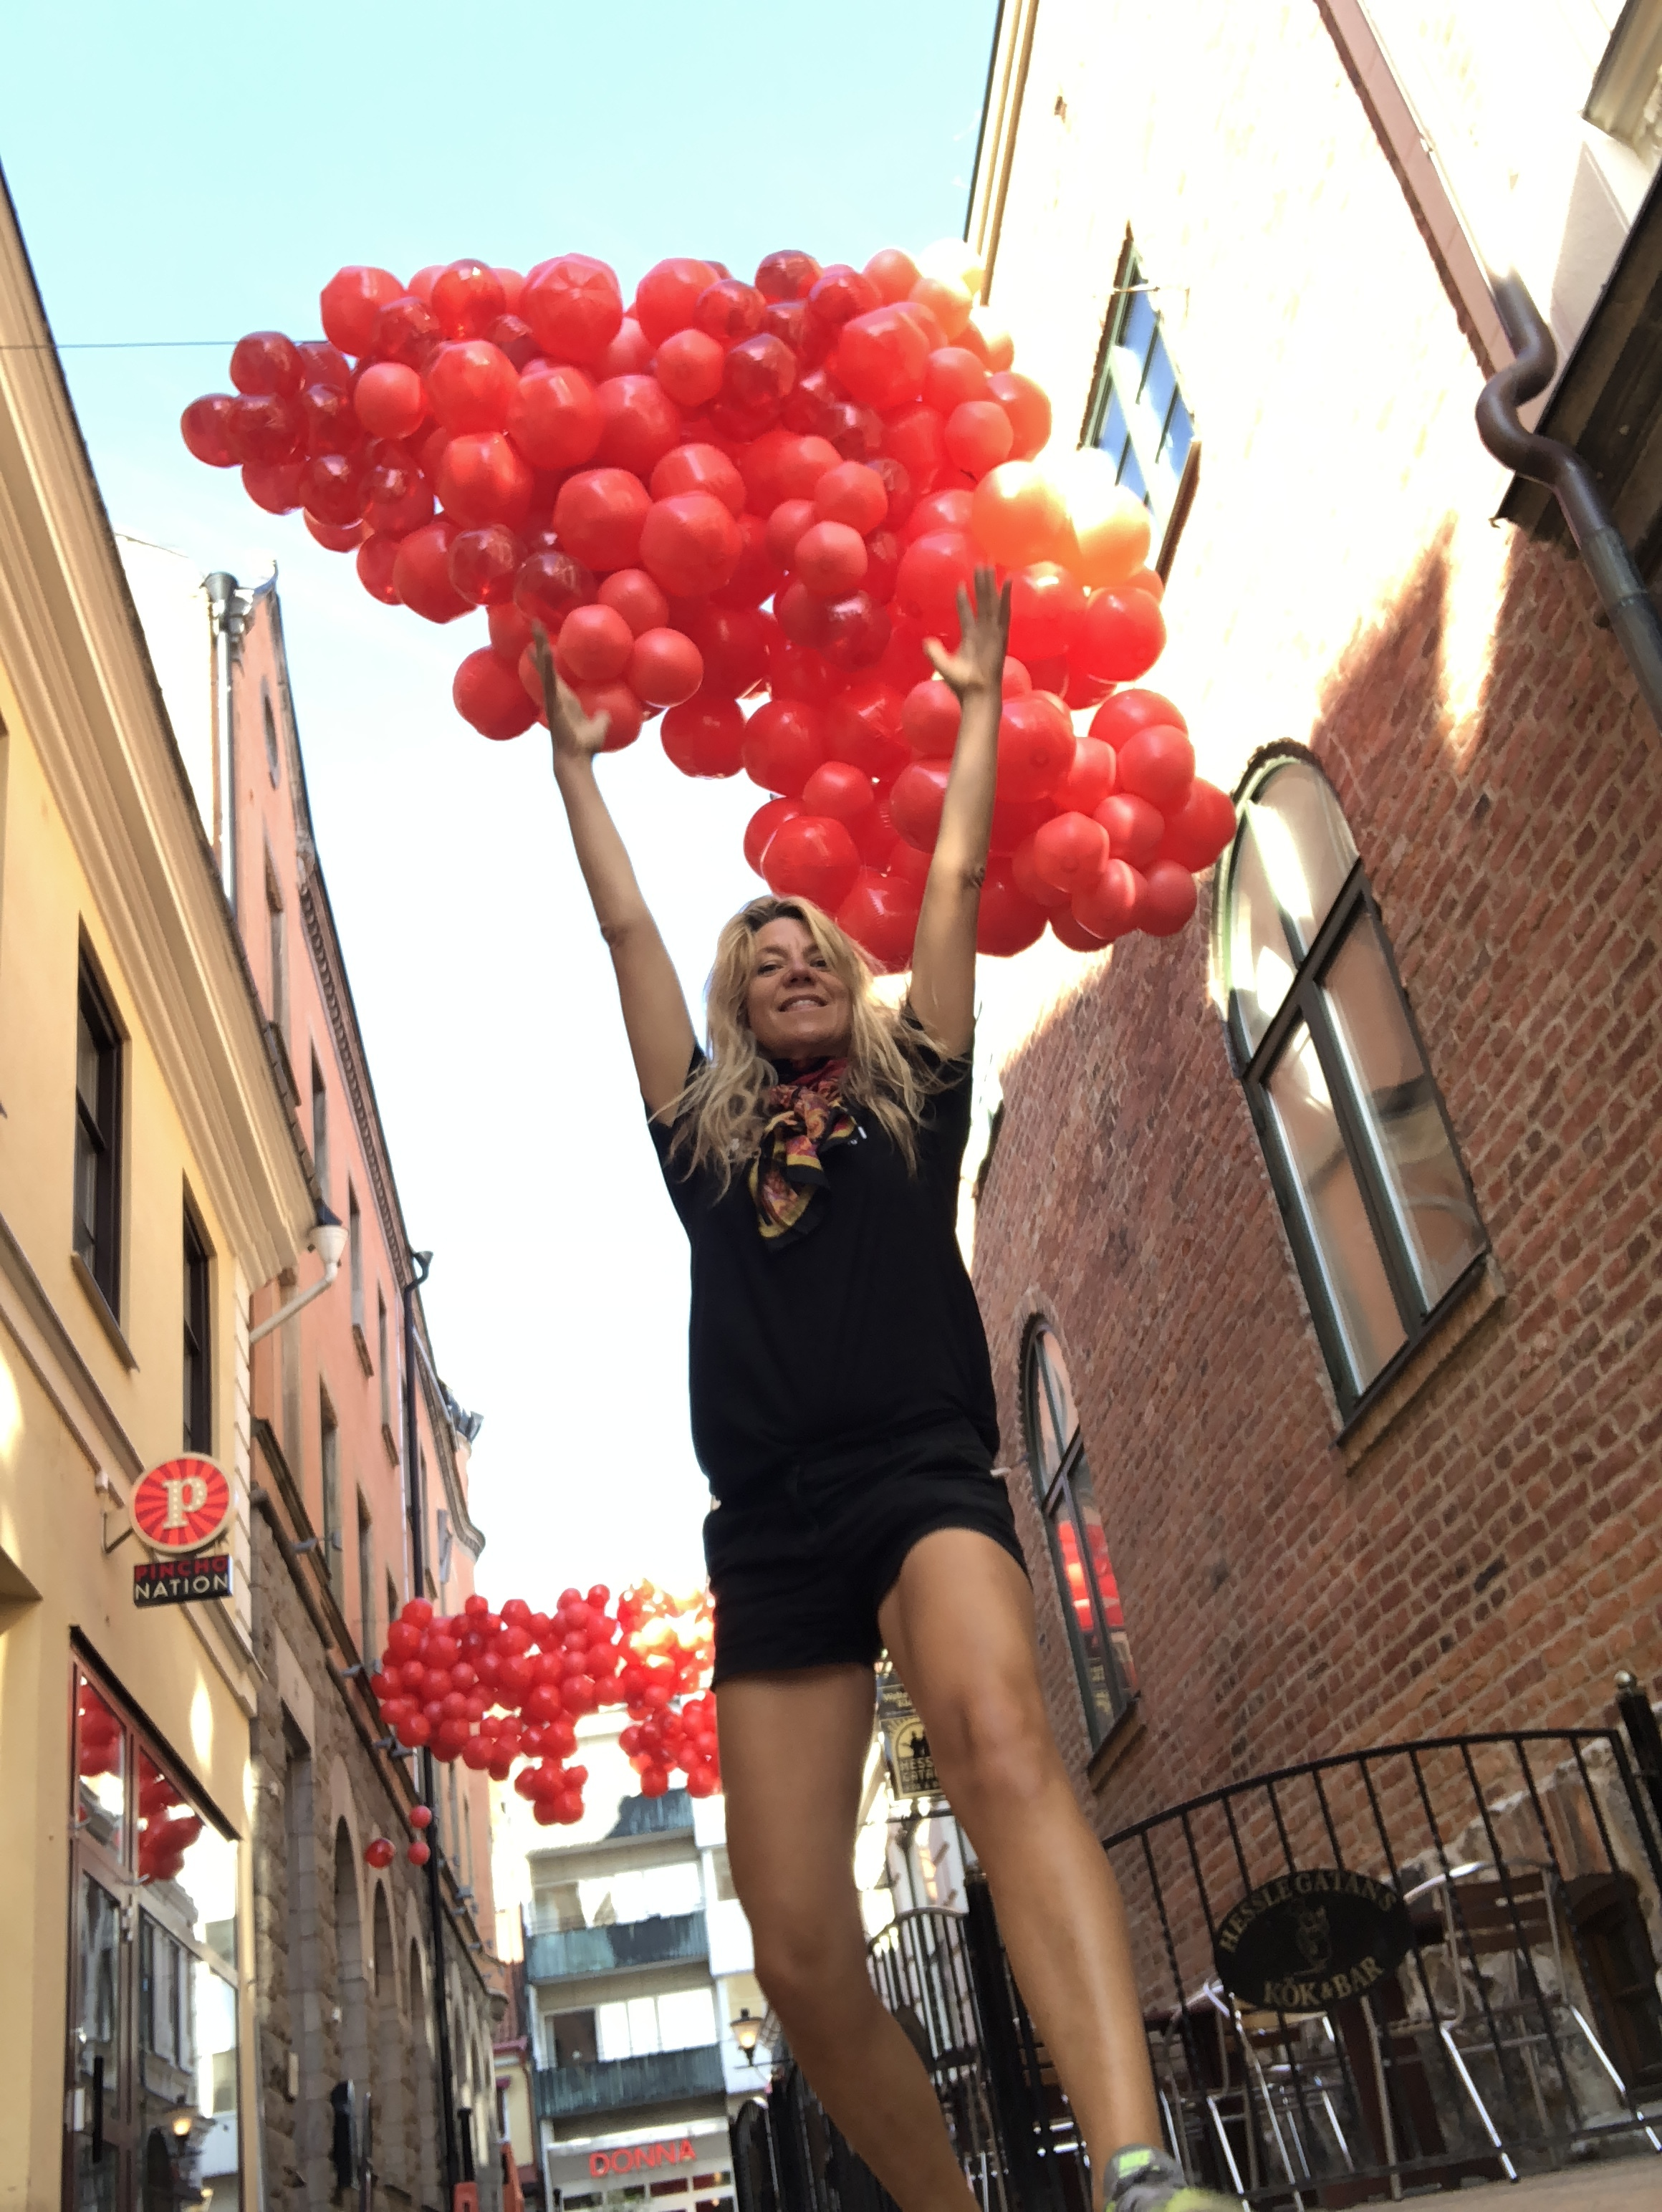 """""""Red cloud"""" - beach balls - an hommage to the water kingdom in Kristianstad that is sitauted at the lowest sea level point in Sweden. A wake up call for the climate changes with more rain and rising water level that can damage the bionynamics and the city center."""